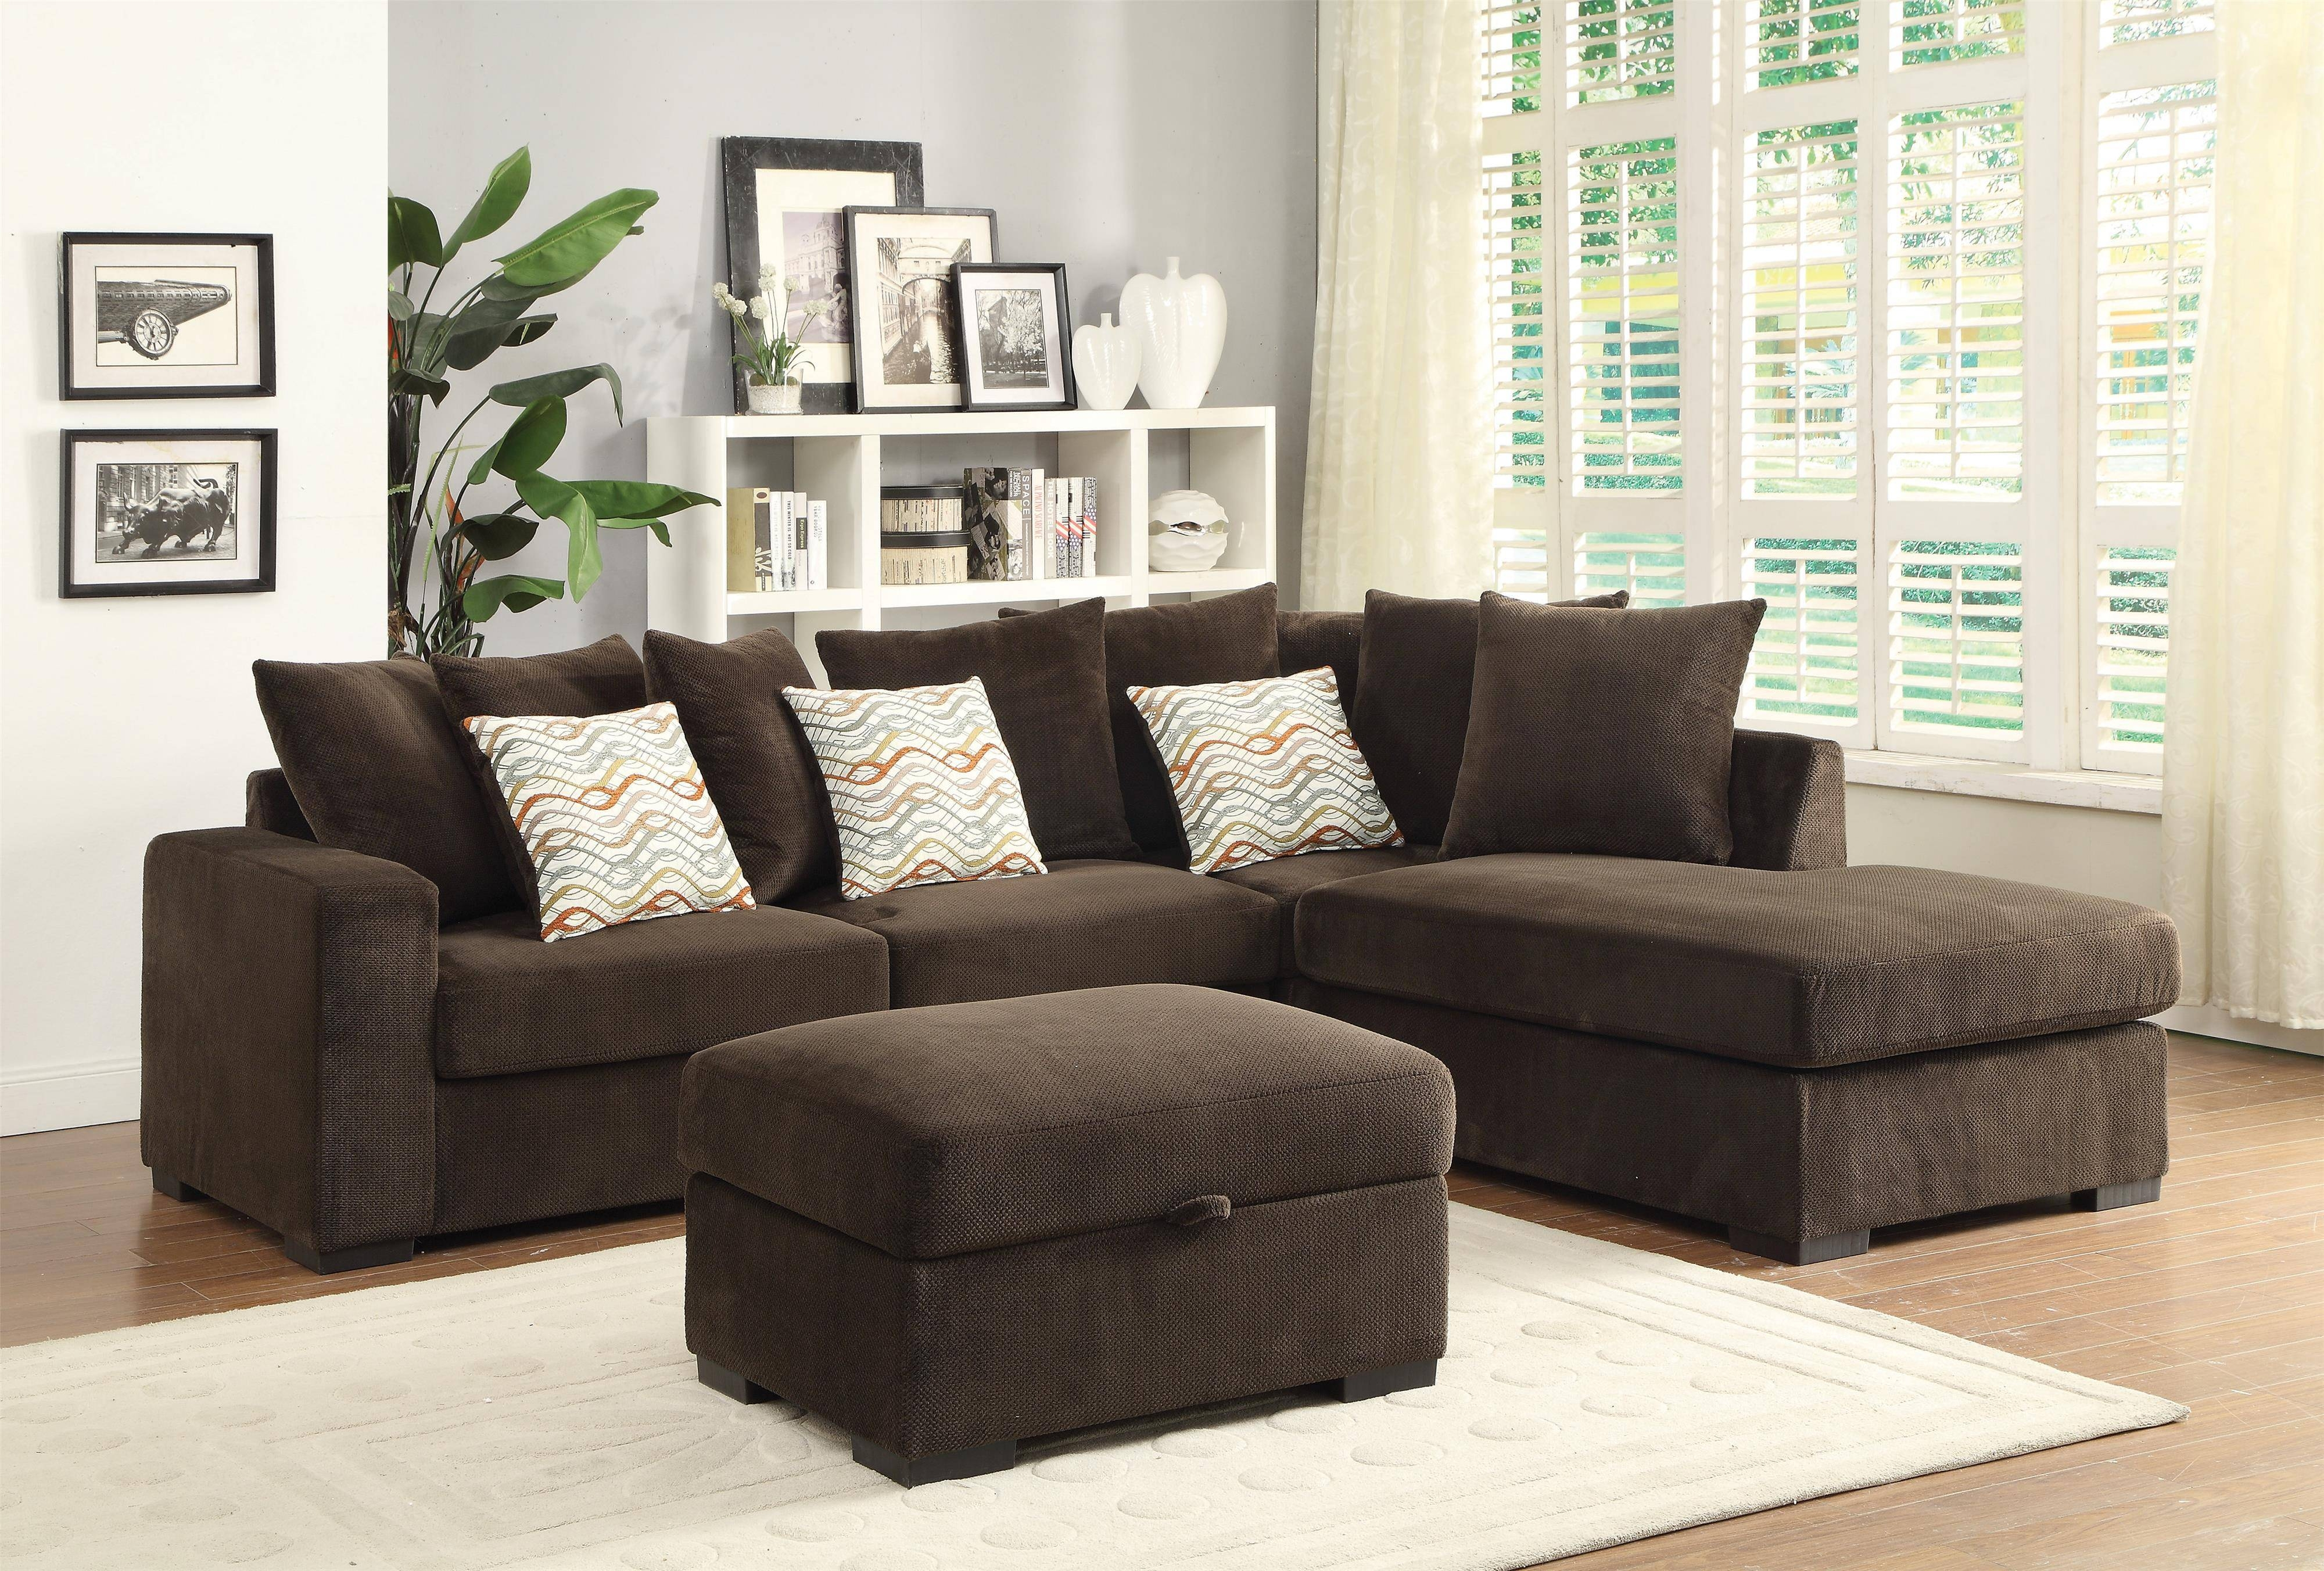 Coaster – Find A Local Furniture Store With Coaster Fine Furniture With Regard To Coasters Sofas (View 3 of 15)